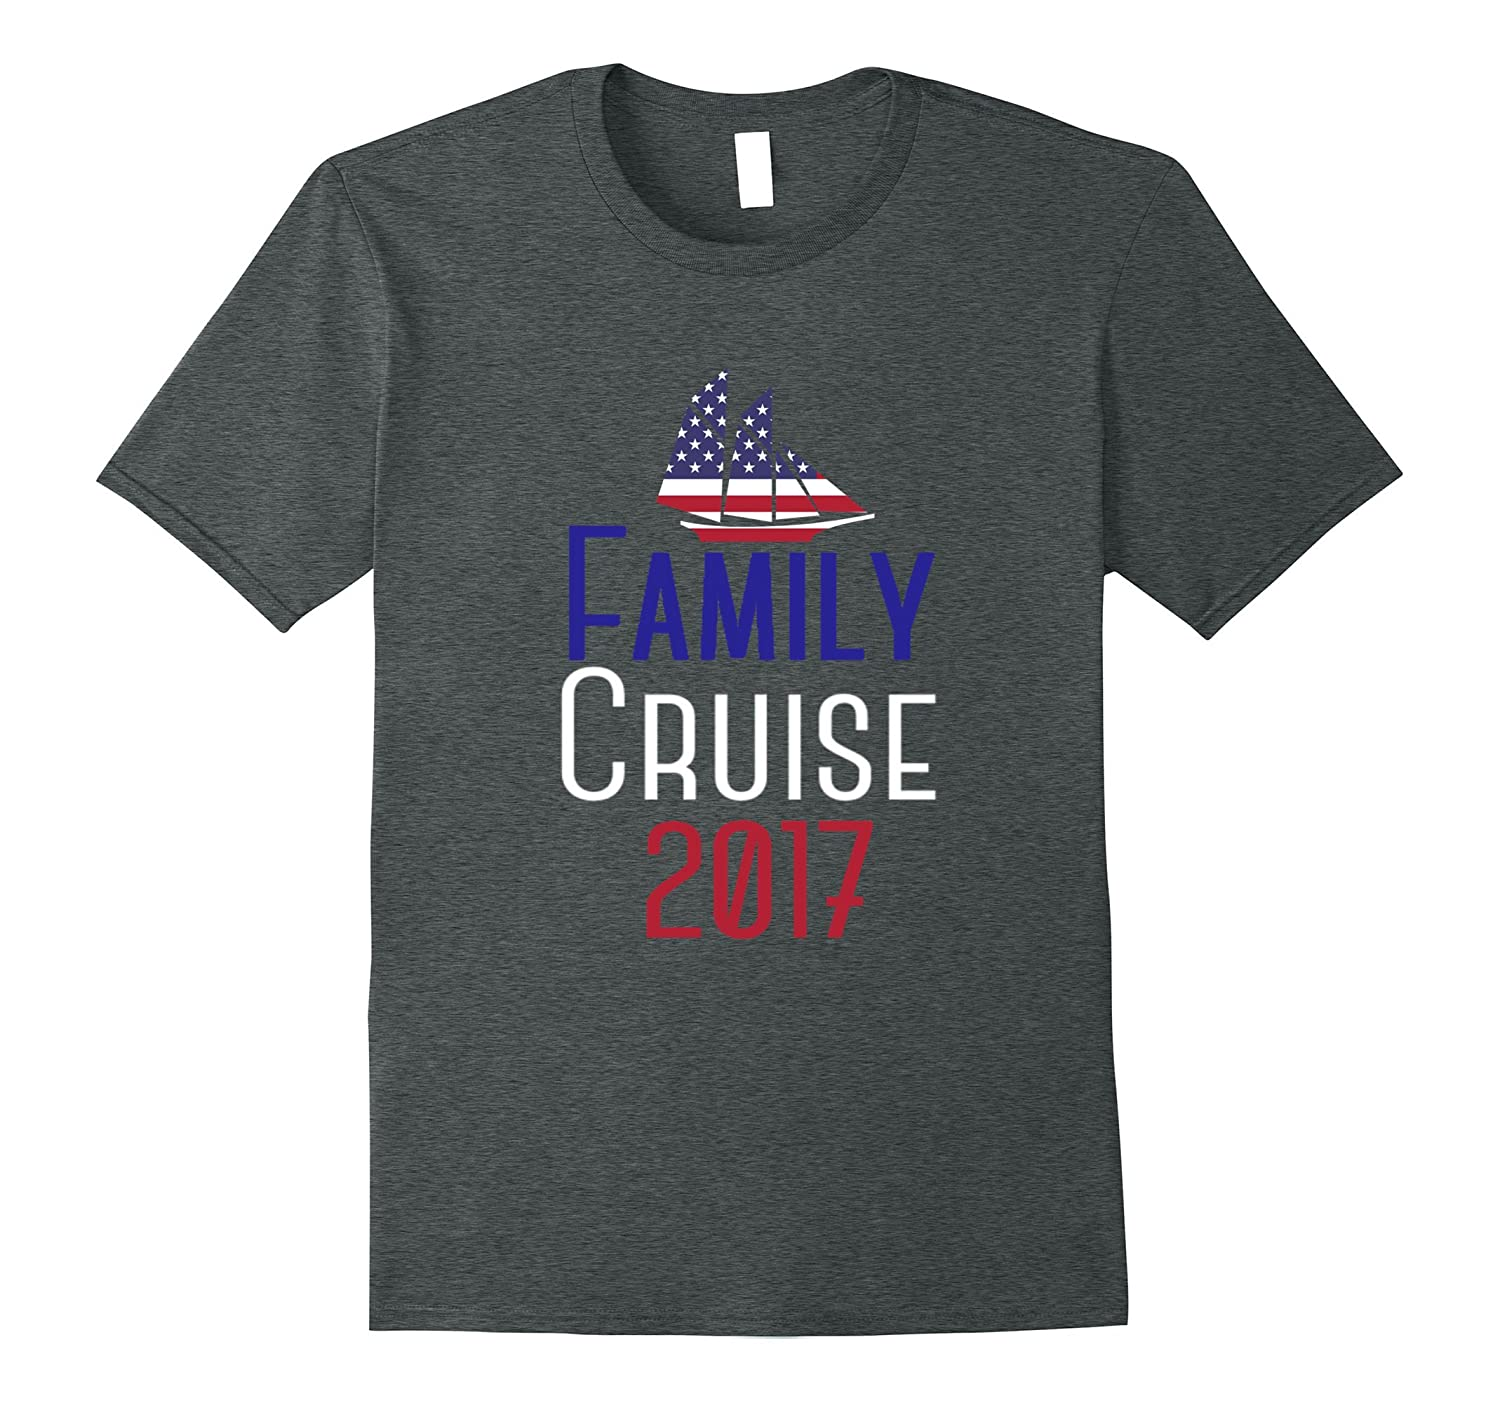 Family Cruise 2017 summer family vacation funny t-shirt